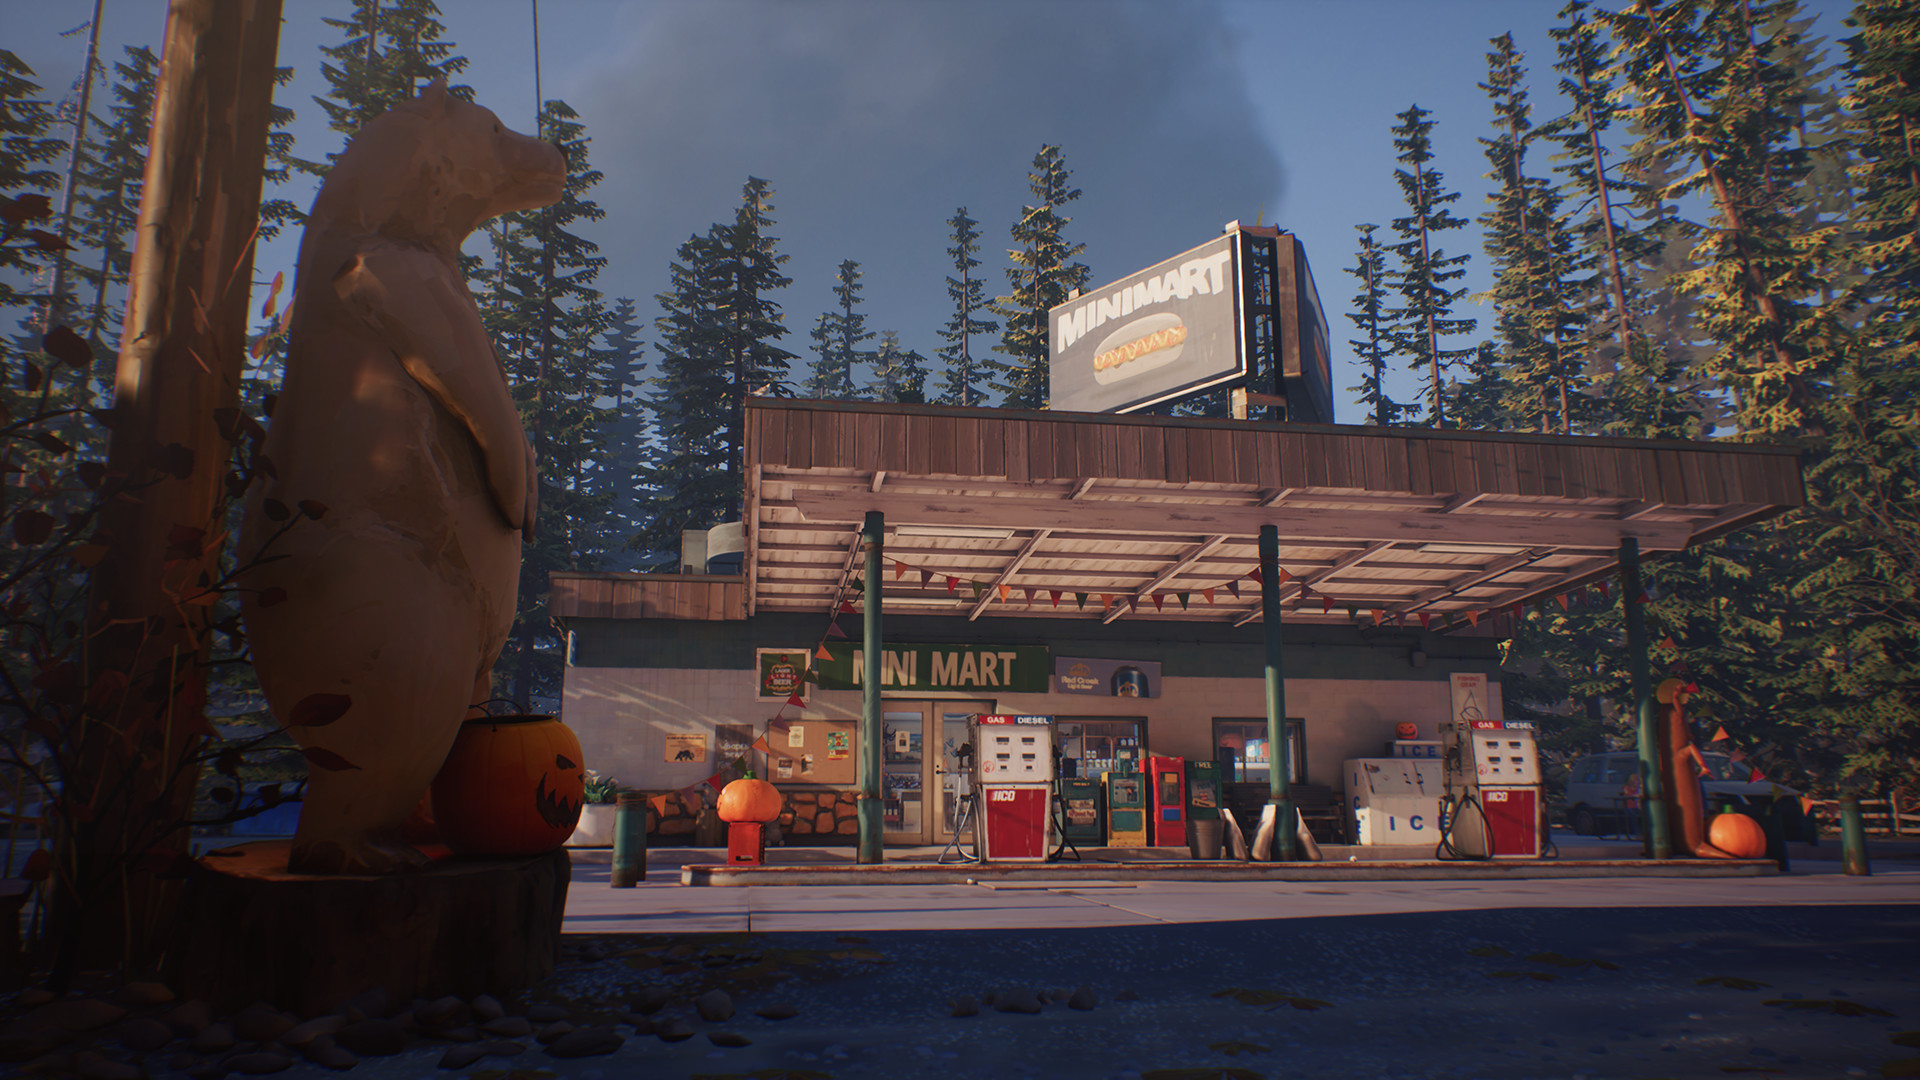 Xbox Game Pass adds Life is Strange 2 to its lineup screenshot